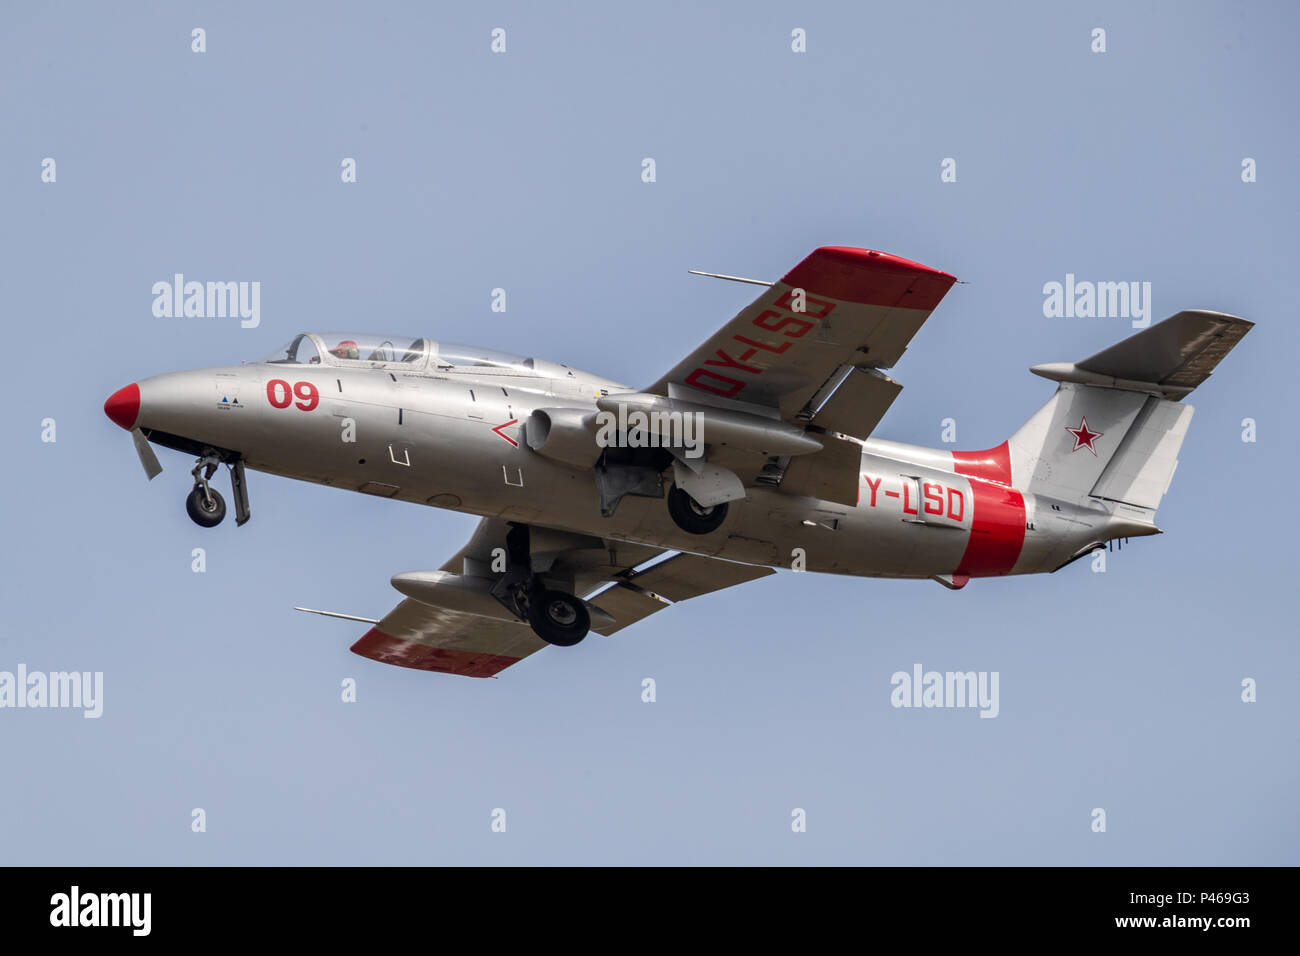 The Aero L-29 Delfín (English: Dolphin, NATO reporting name: Maya) is a military jet trainer developed and manufactured by Czechoslovakian aviation ma - Stock Image